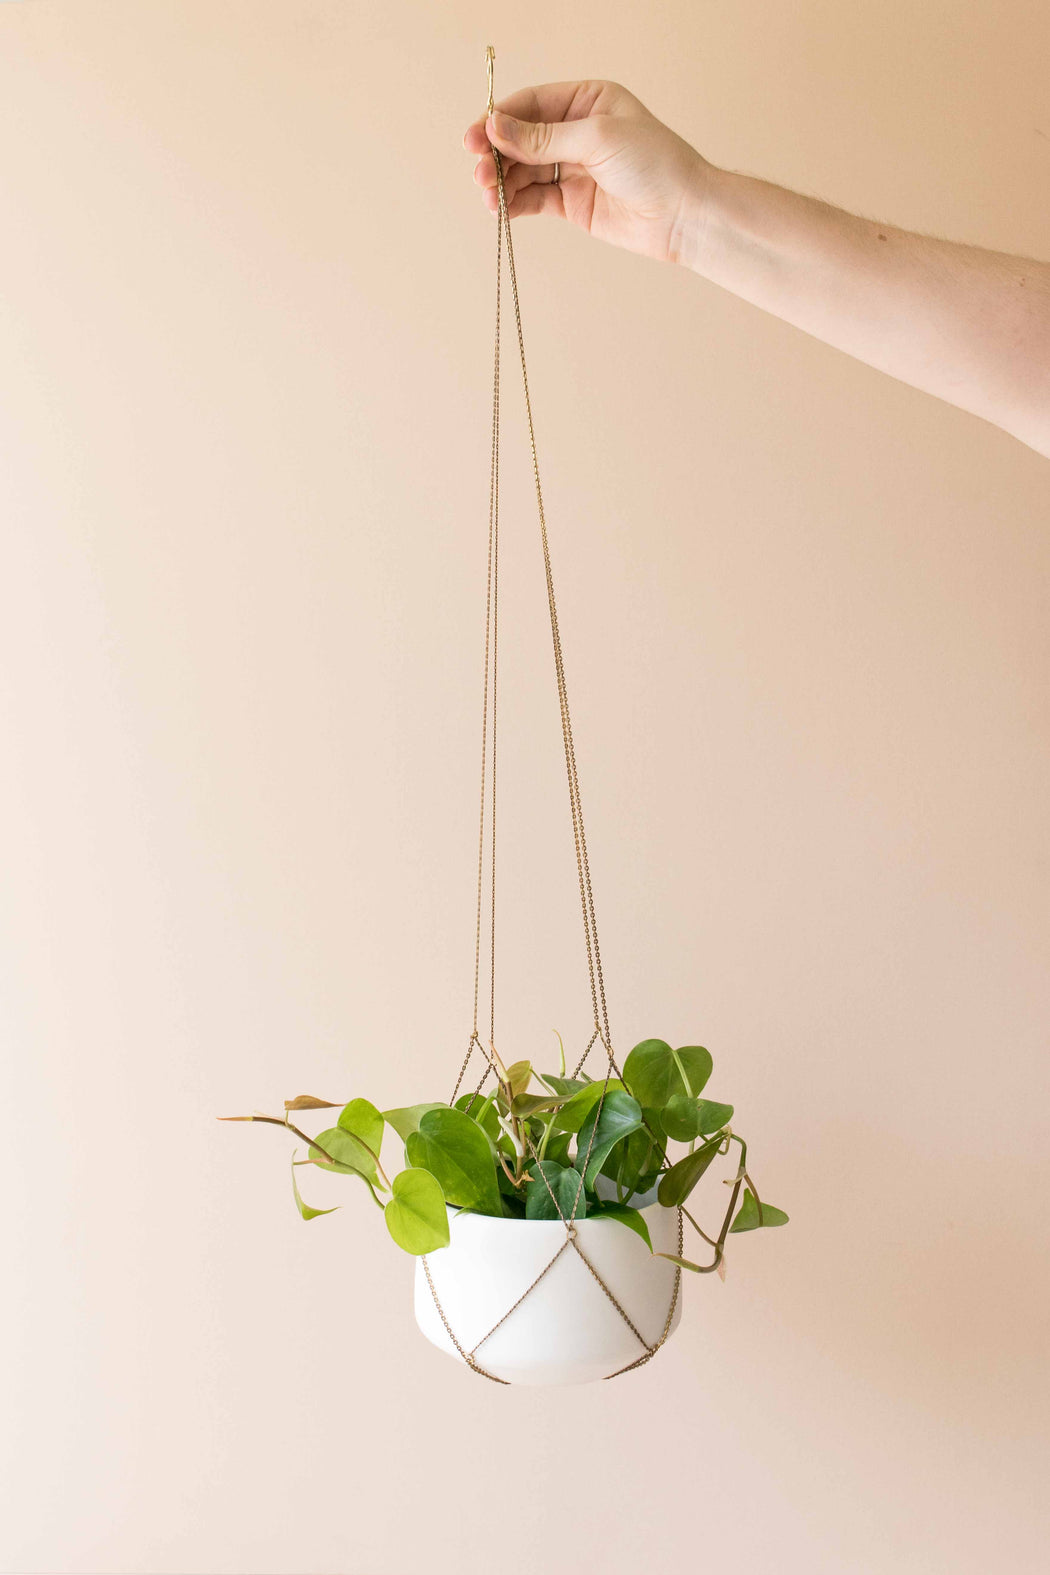 Steady Hand Creative Chain Plant Hanger